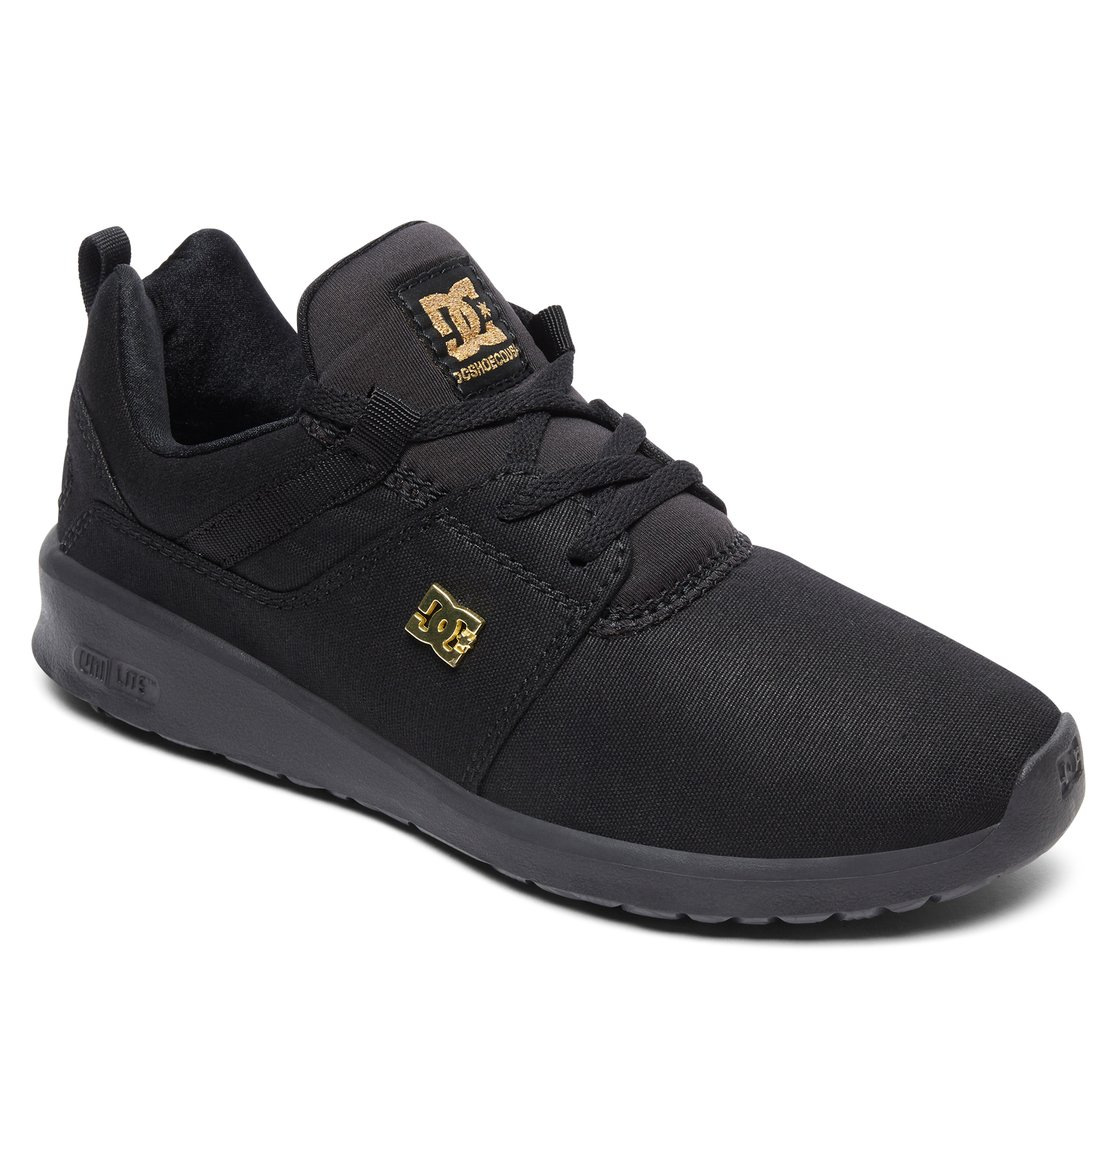 Heathrow TX SE - Baskets - Marron - DC Shoes nIsTuW